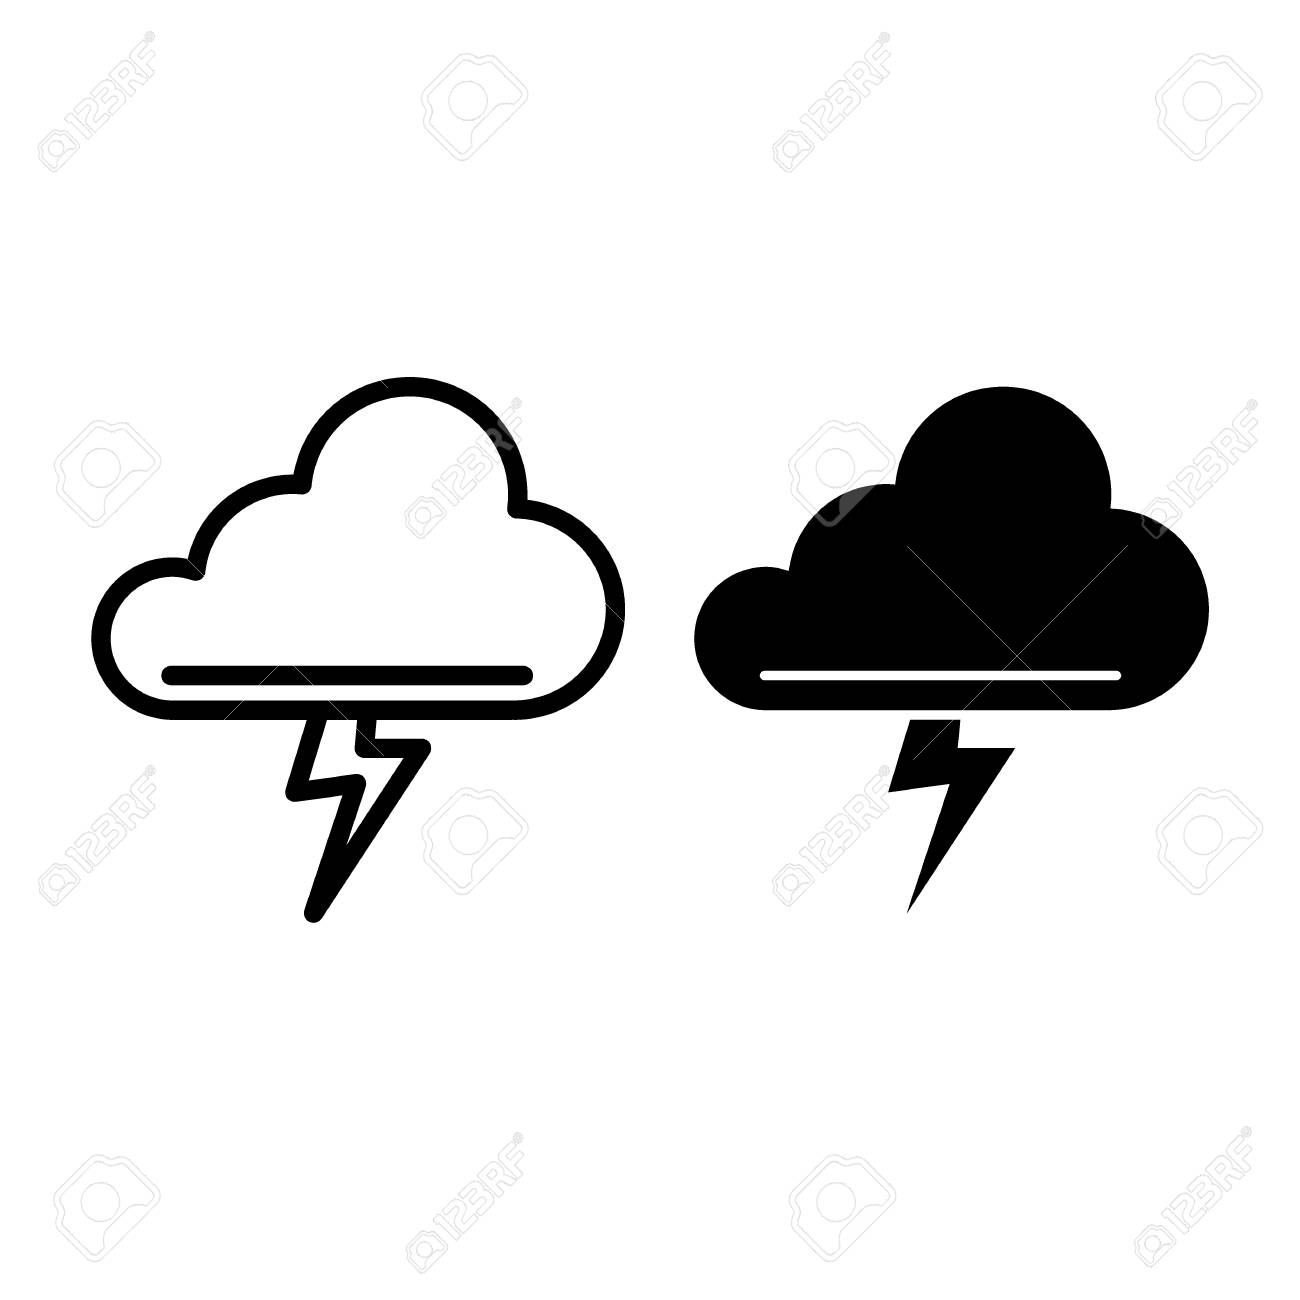 Cloud And Thunderstorm Line And Glyph Icon Lightning Bolt In Royalty Free Cliparts Vectors And Stock Illustration Image 124853504